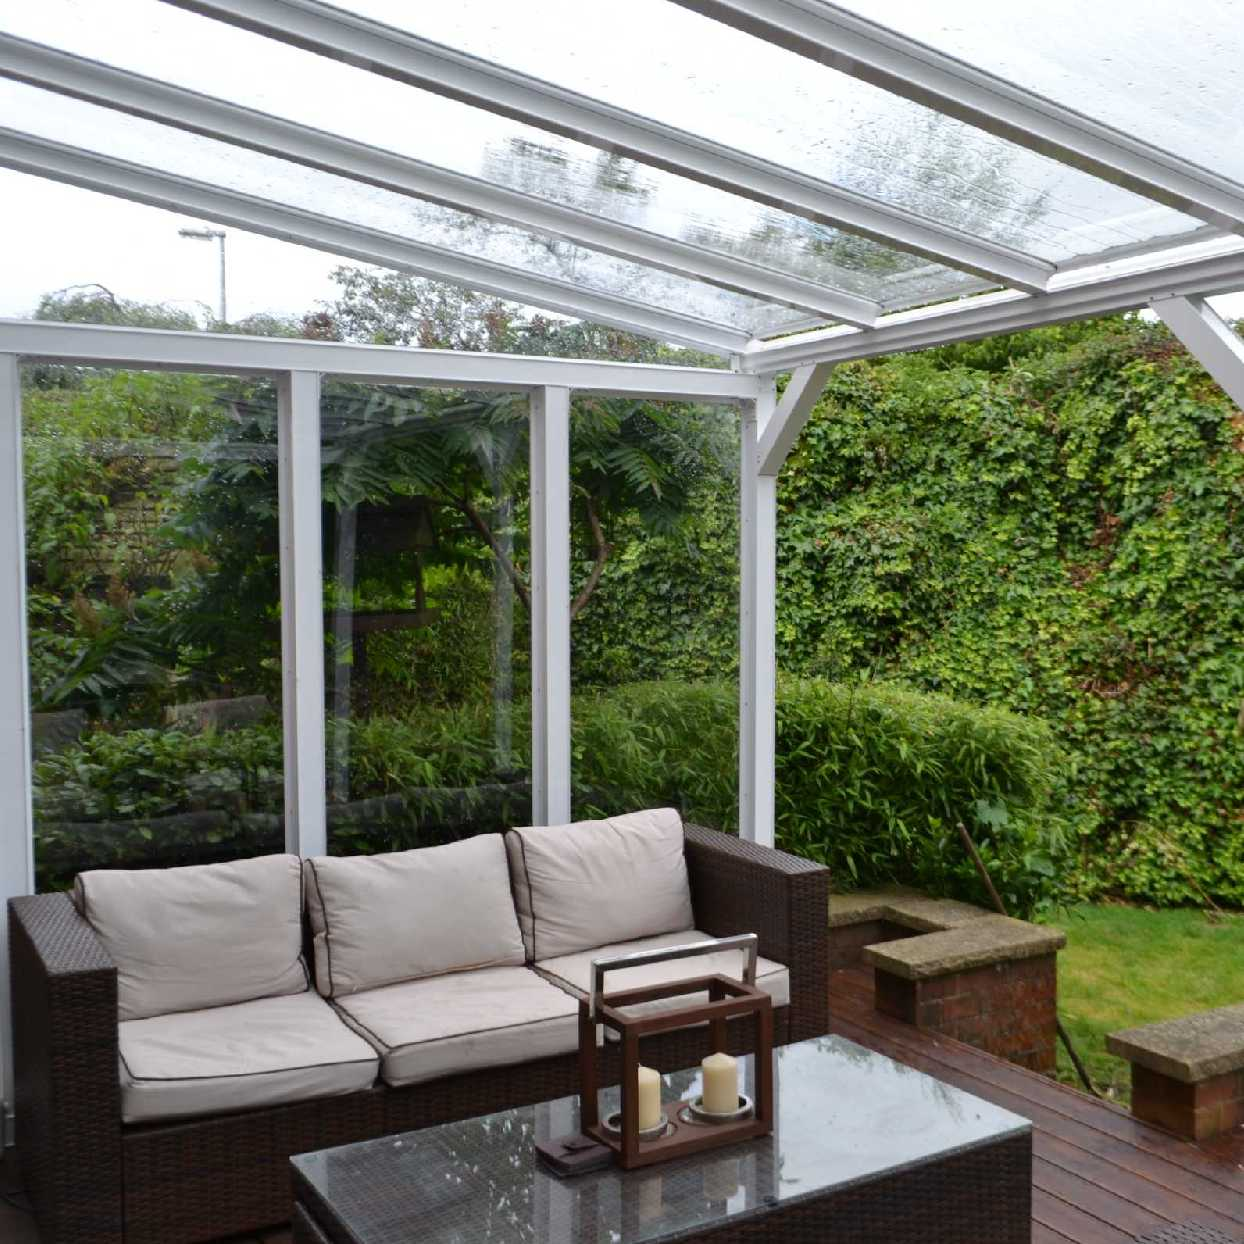 Great selection of Omega Smart Lean-To Canopy with 16mm Polycarbonate Glazing - 9.9m (W) x 4.0m (P), (5) Supporting Posts